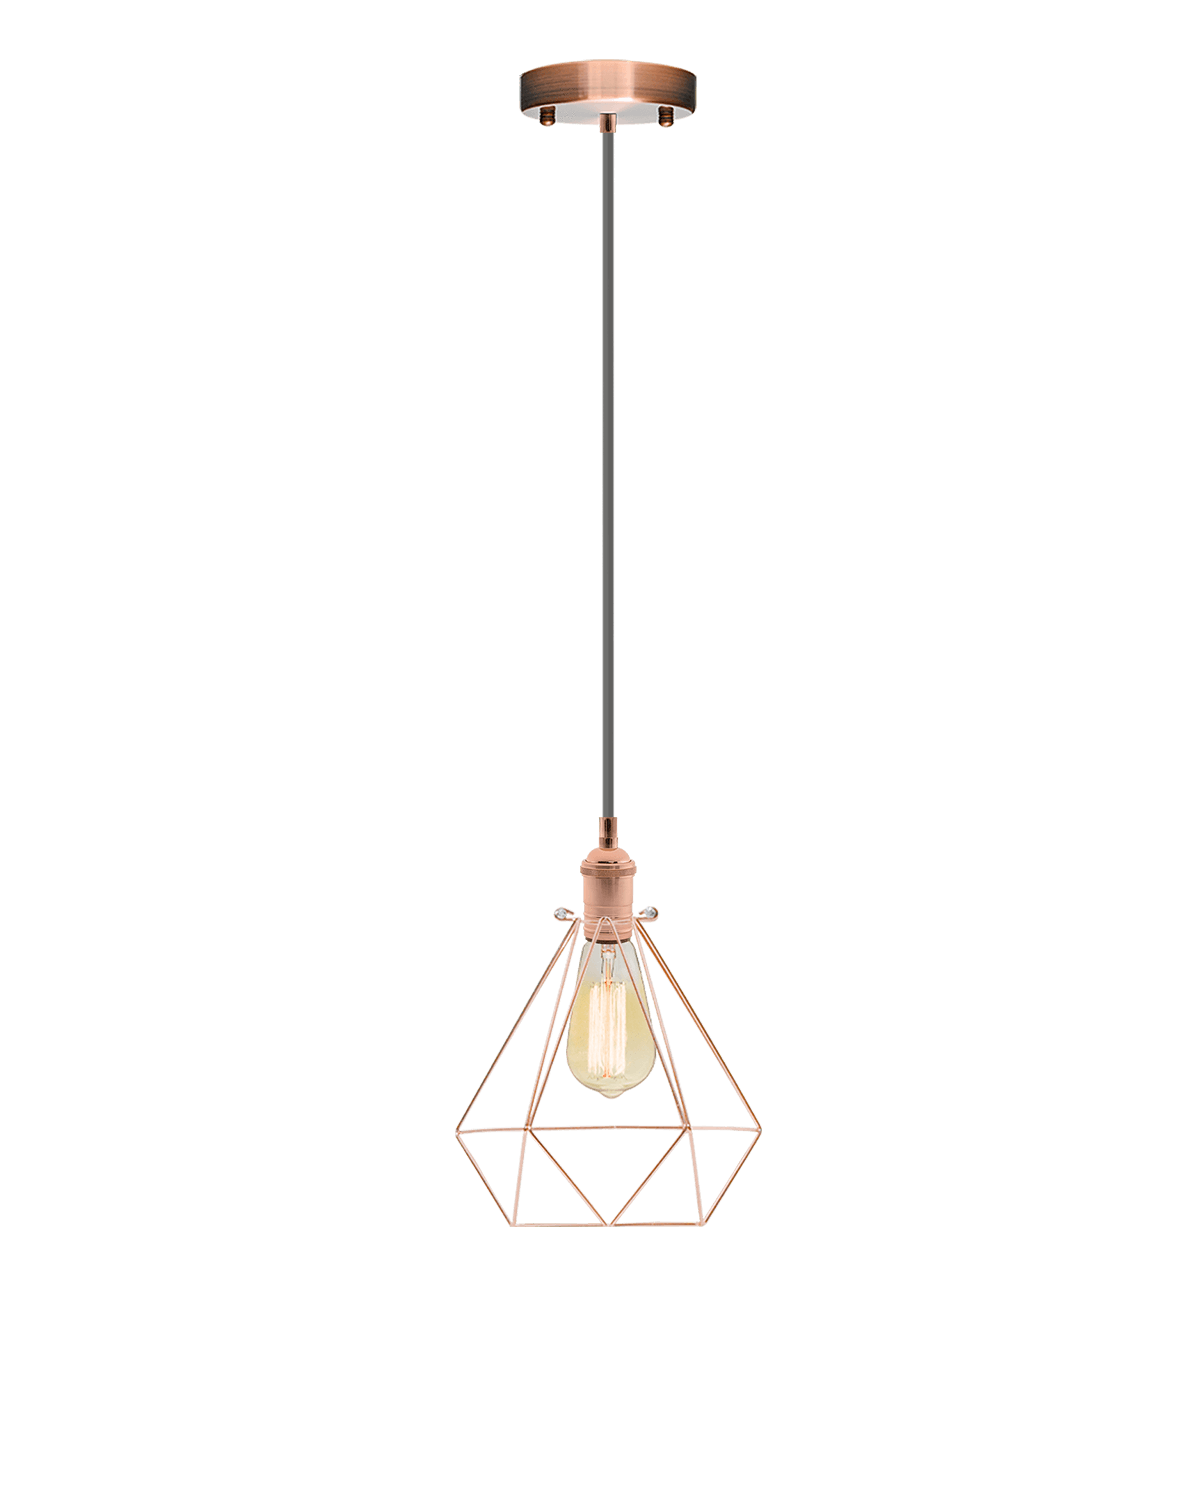 Single Pendant: Grey and Copper Geometric Cage Hangout Lighting